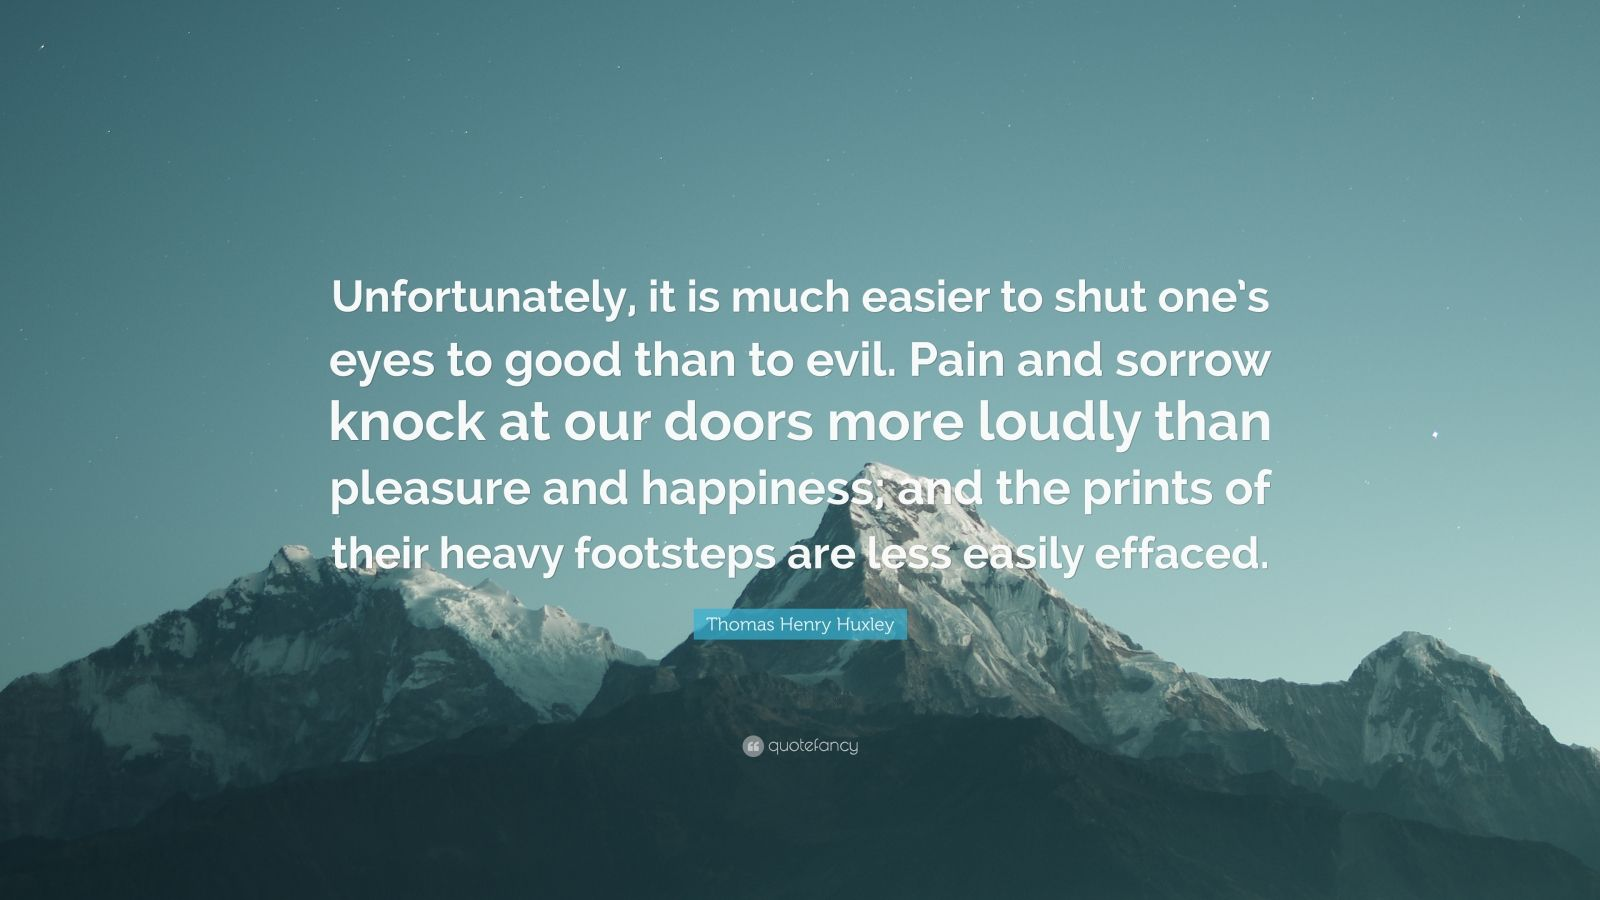 """Thomas Henry Huxley Quote: """"Unfortunately, it is much easier to shut one's eyes to good than to evil. Pain and sorrow knock at our doors more loudly than pleasure and happiness; and the prints of their heavy footsteps are less easily effaced."""""""